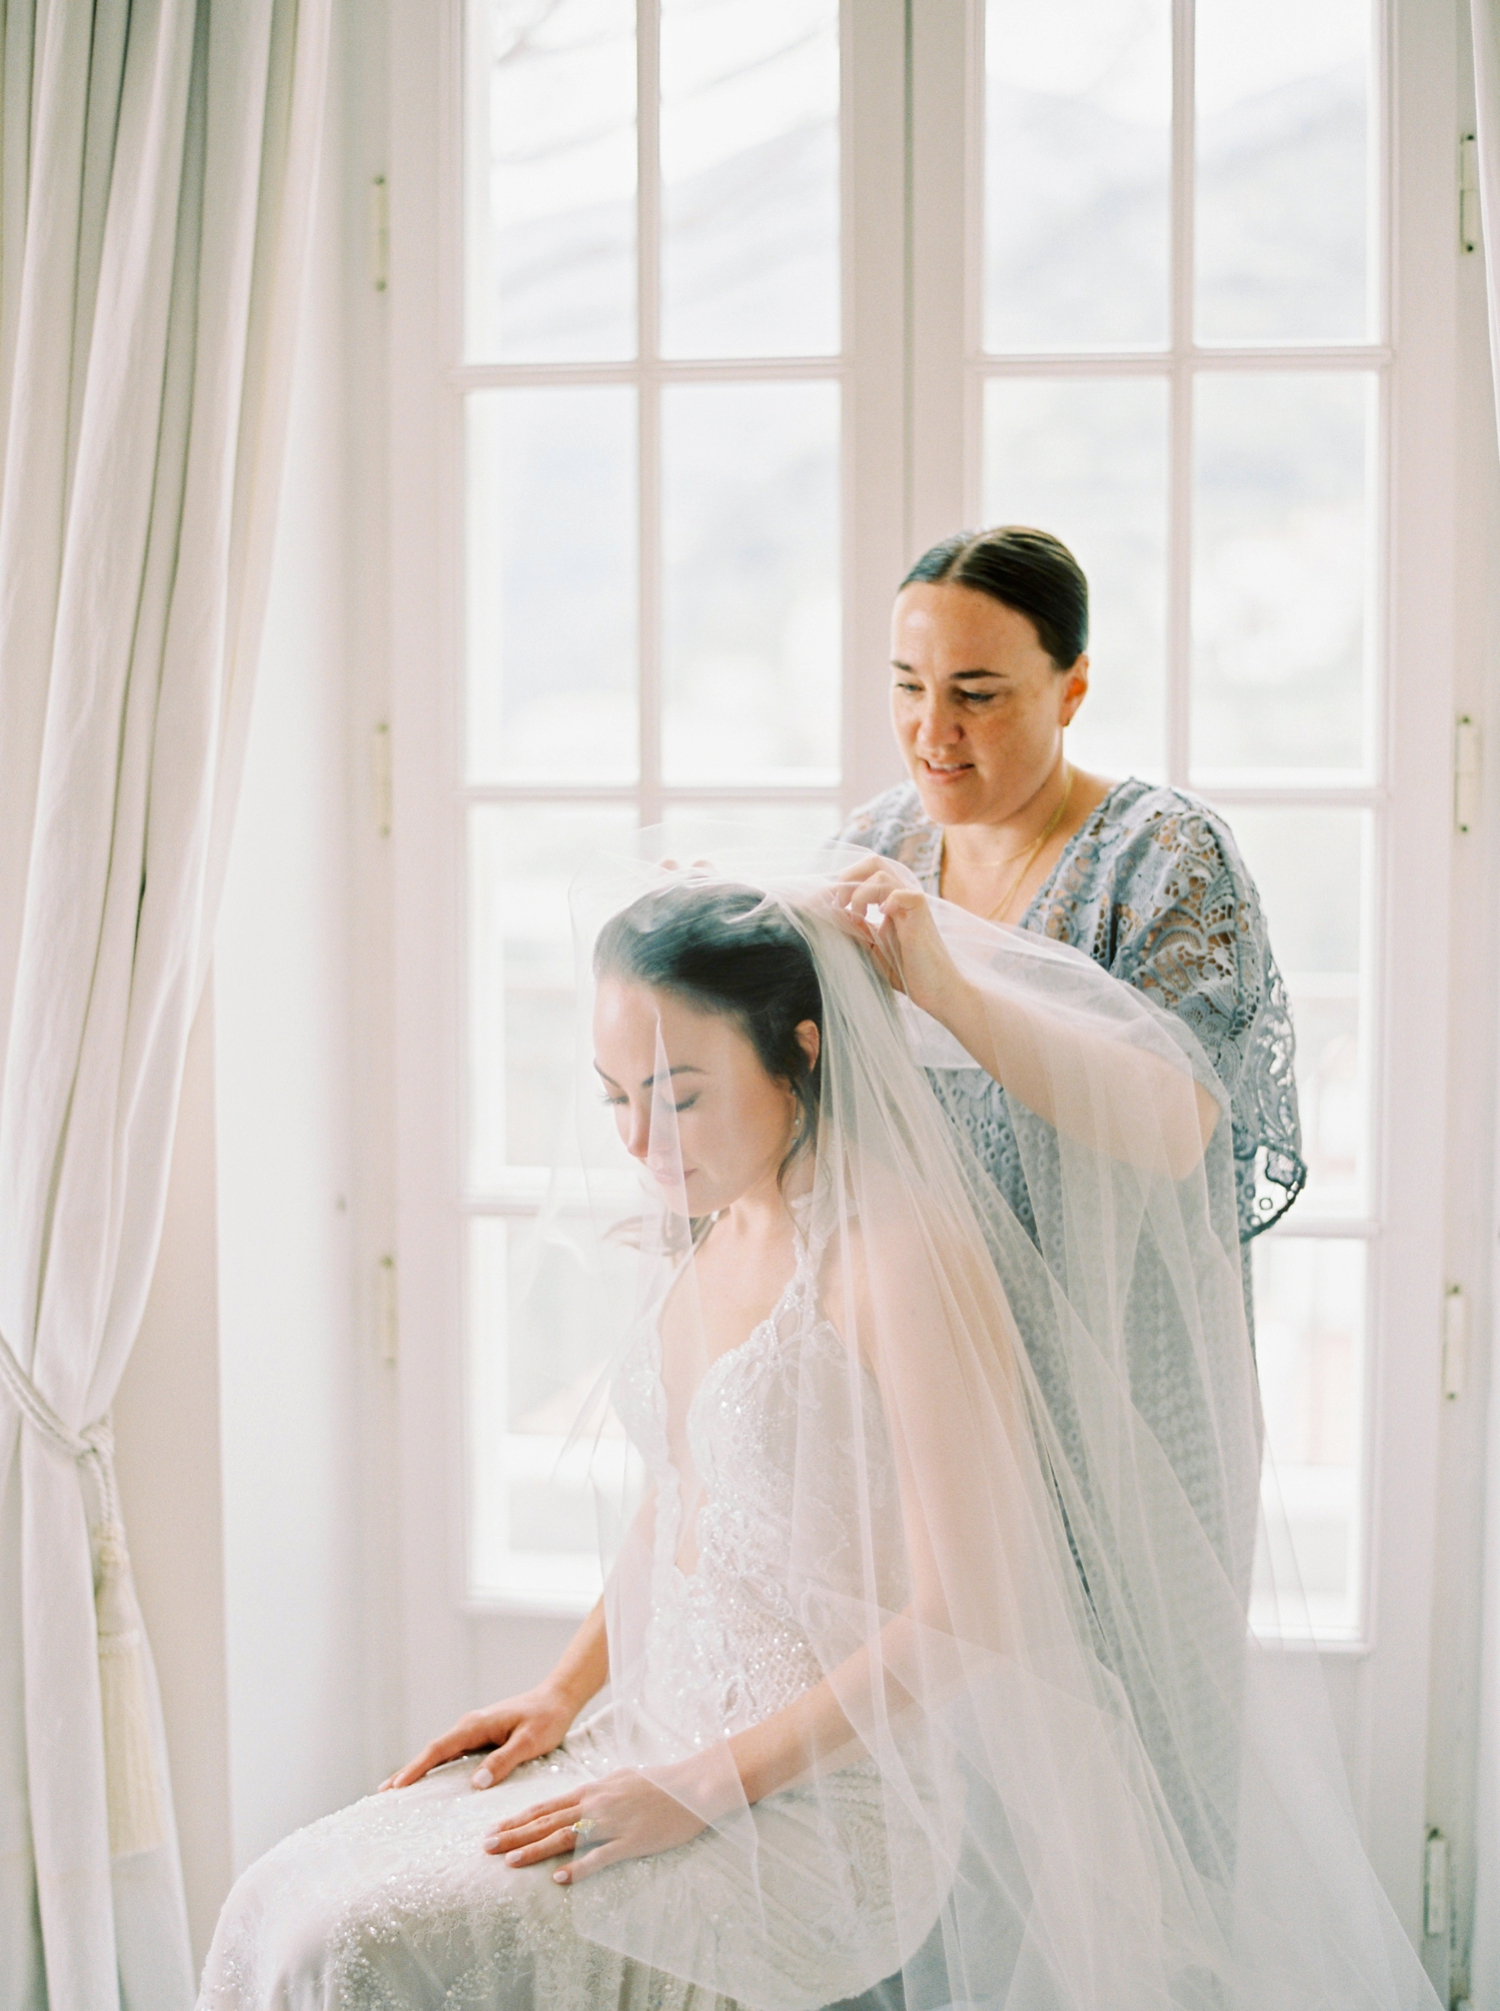 Ravello Italy Amafli Coast destination wedding photographers | english speaking wedding photographer in Italy | Justine Milton Photography | bride getting ready